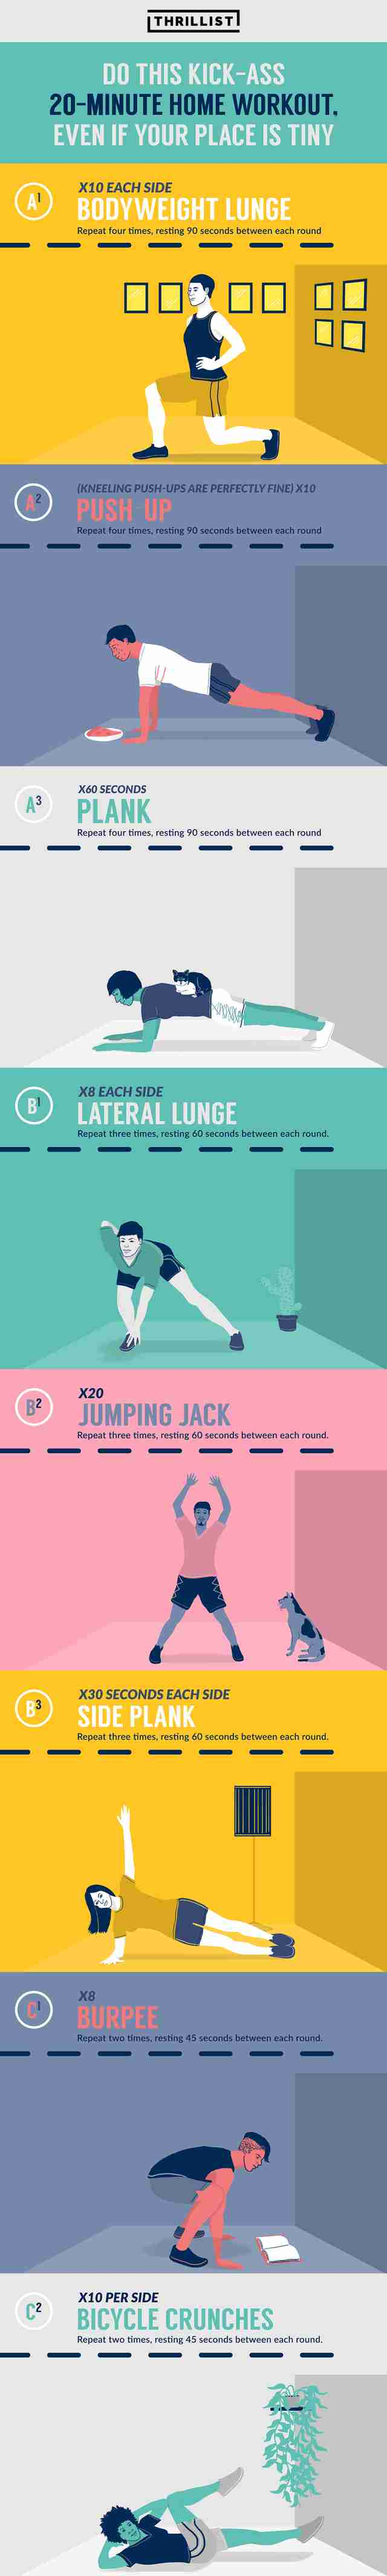 bodyweight home workout infographic